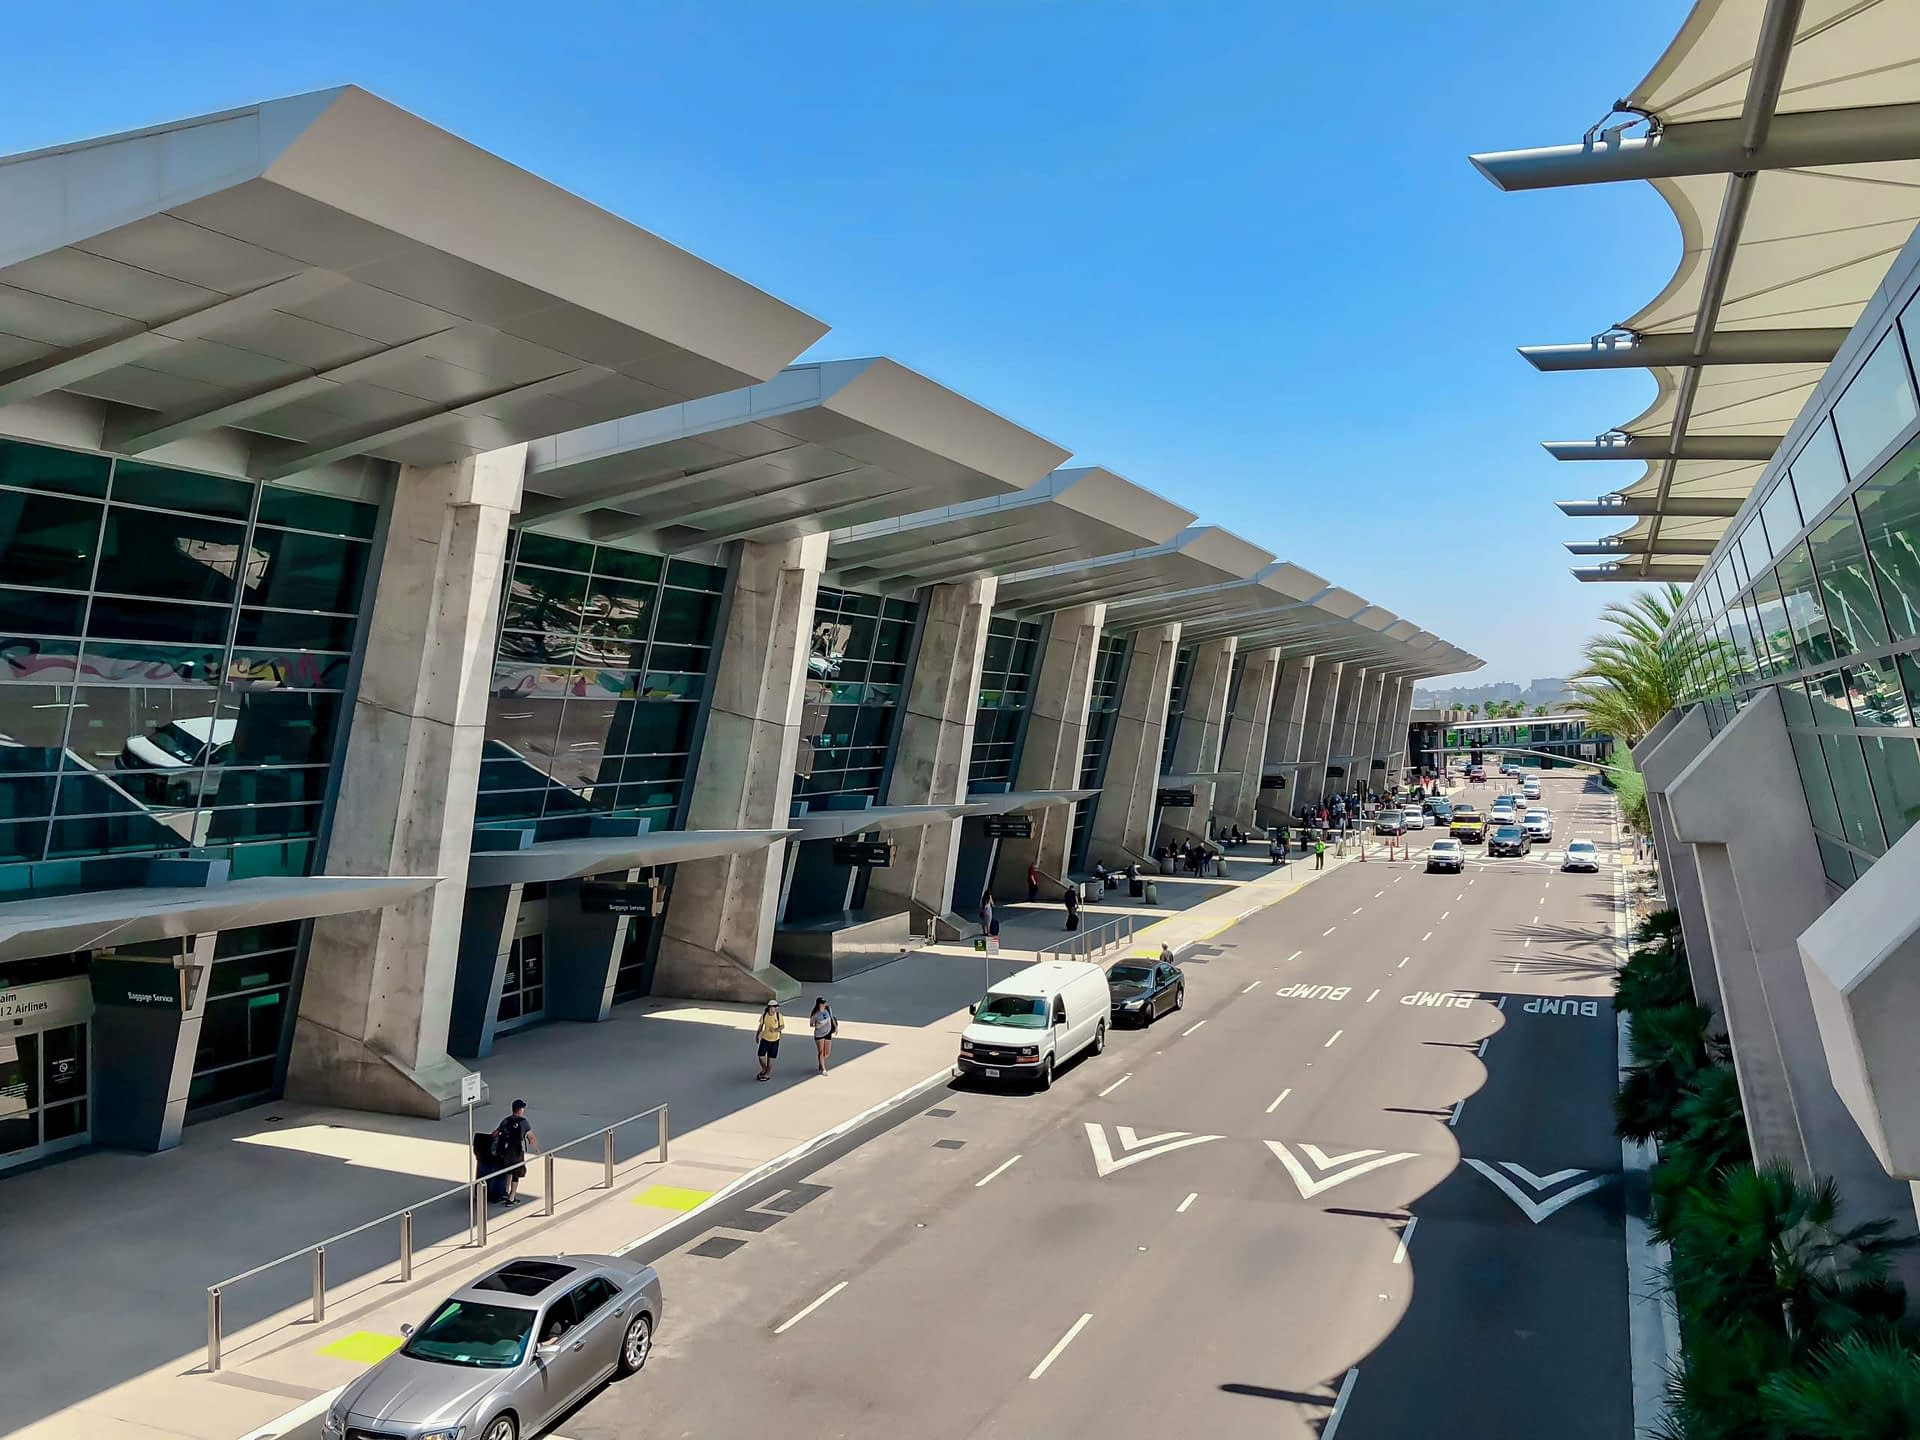 New terminal at San Diego airport will bring thousands of jobs